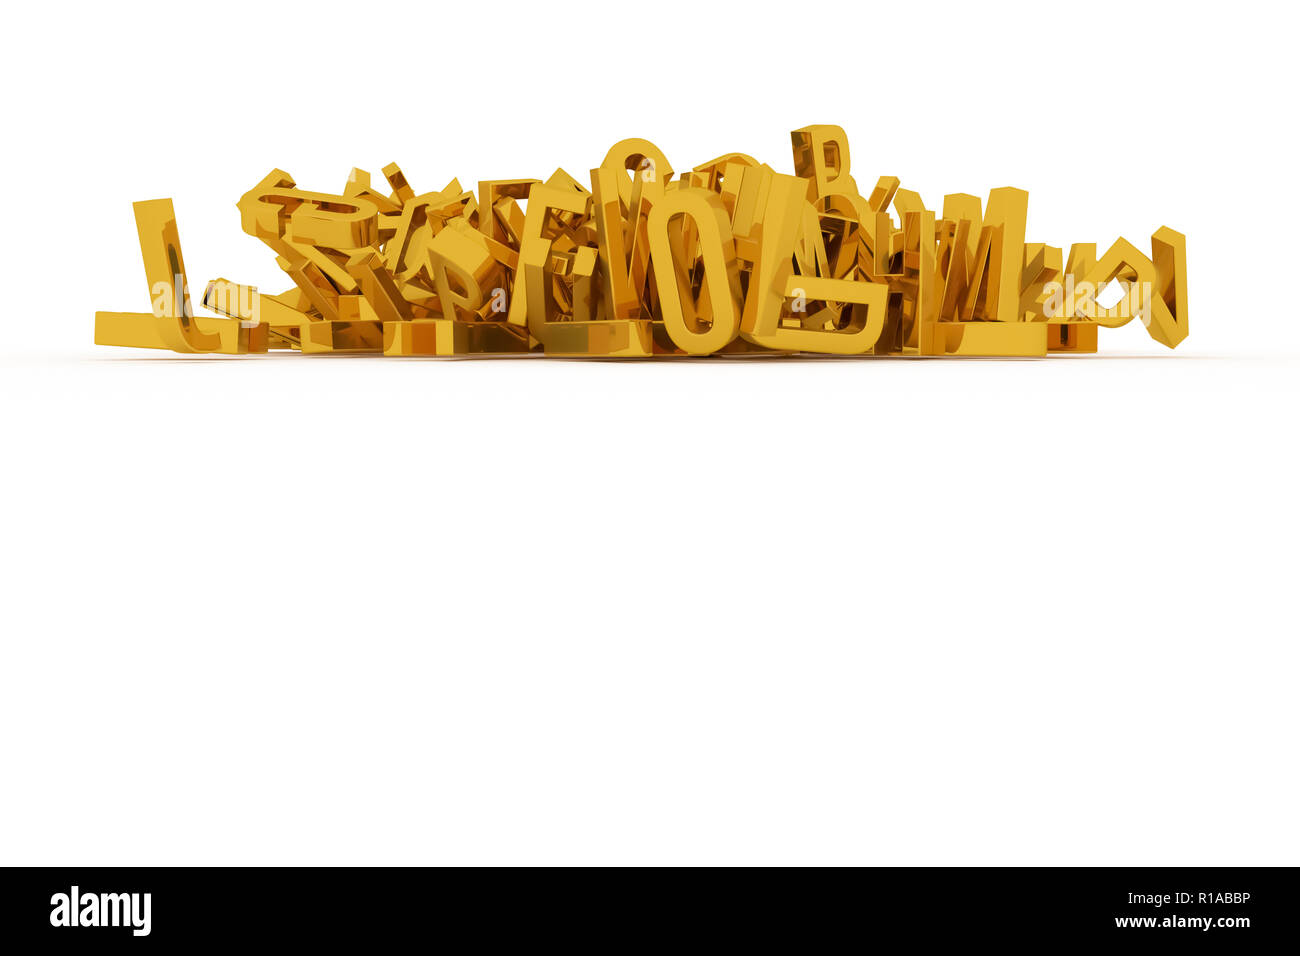 Decorative, illustrations CGI typography, letter of ABC, alphabet. Good for design texture, background. Golden 3D rendering. Stack, wallpaper, mess &  - Stock Image